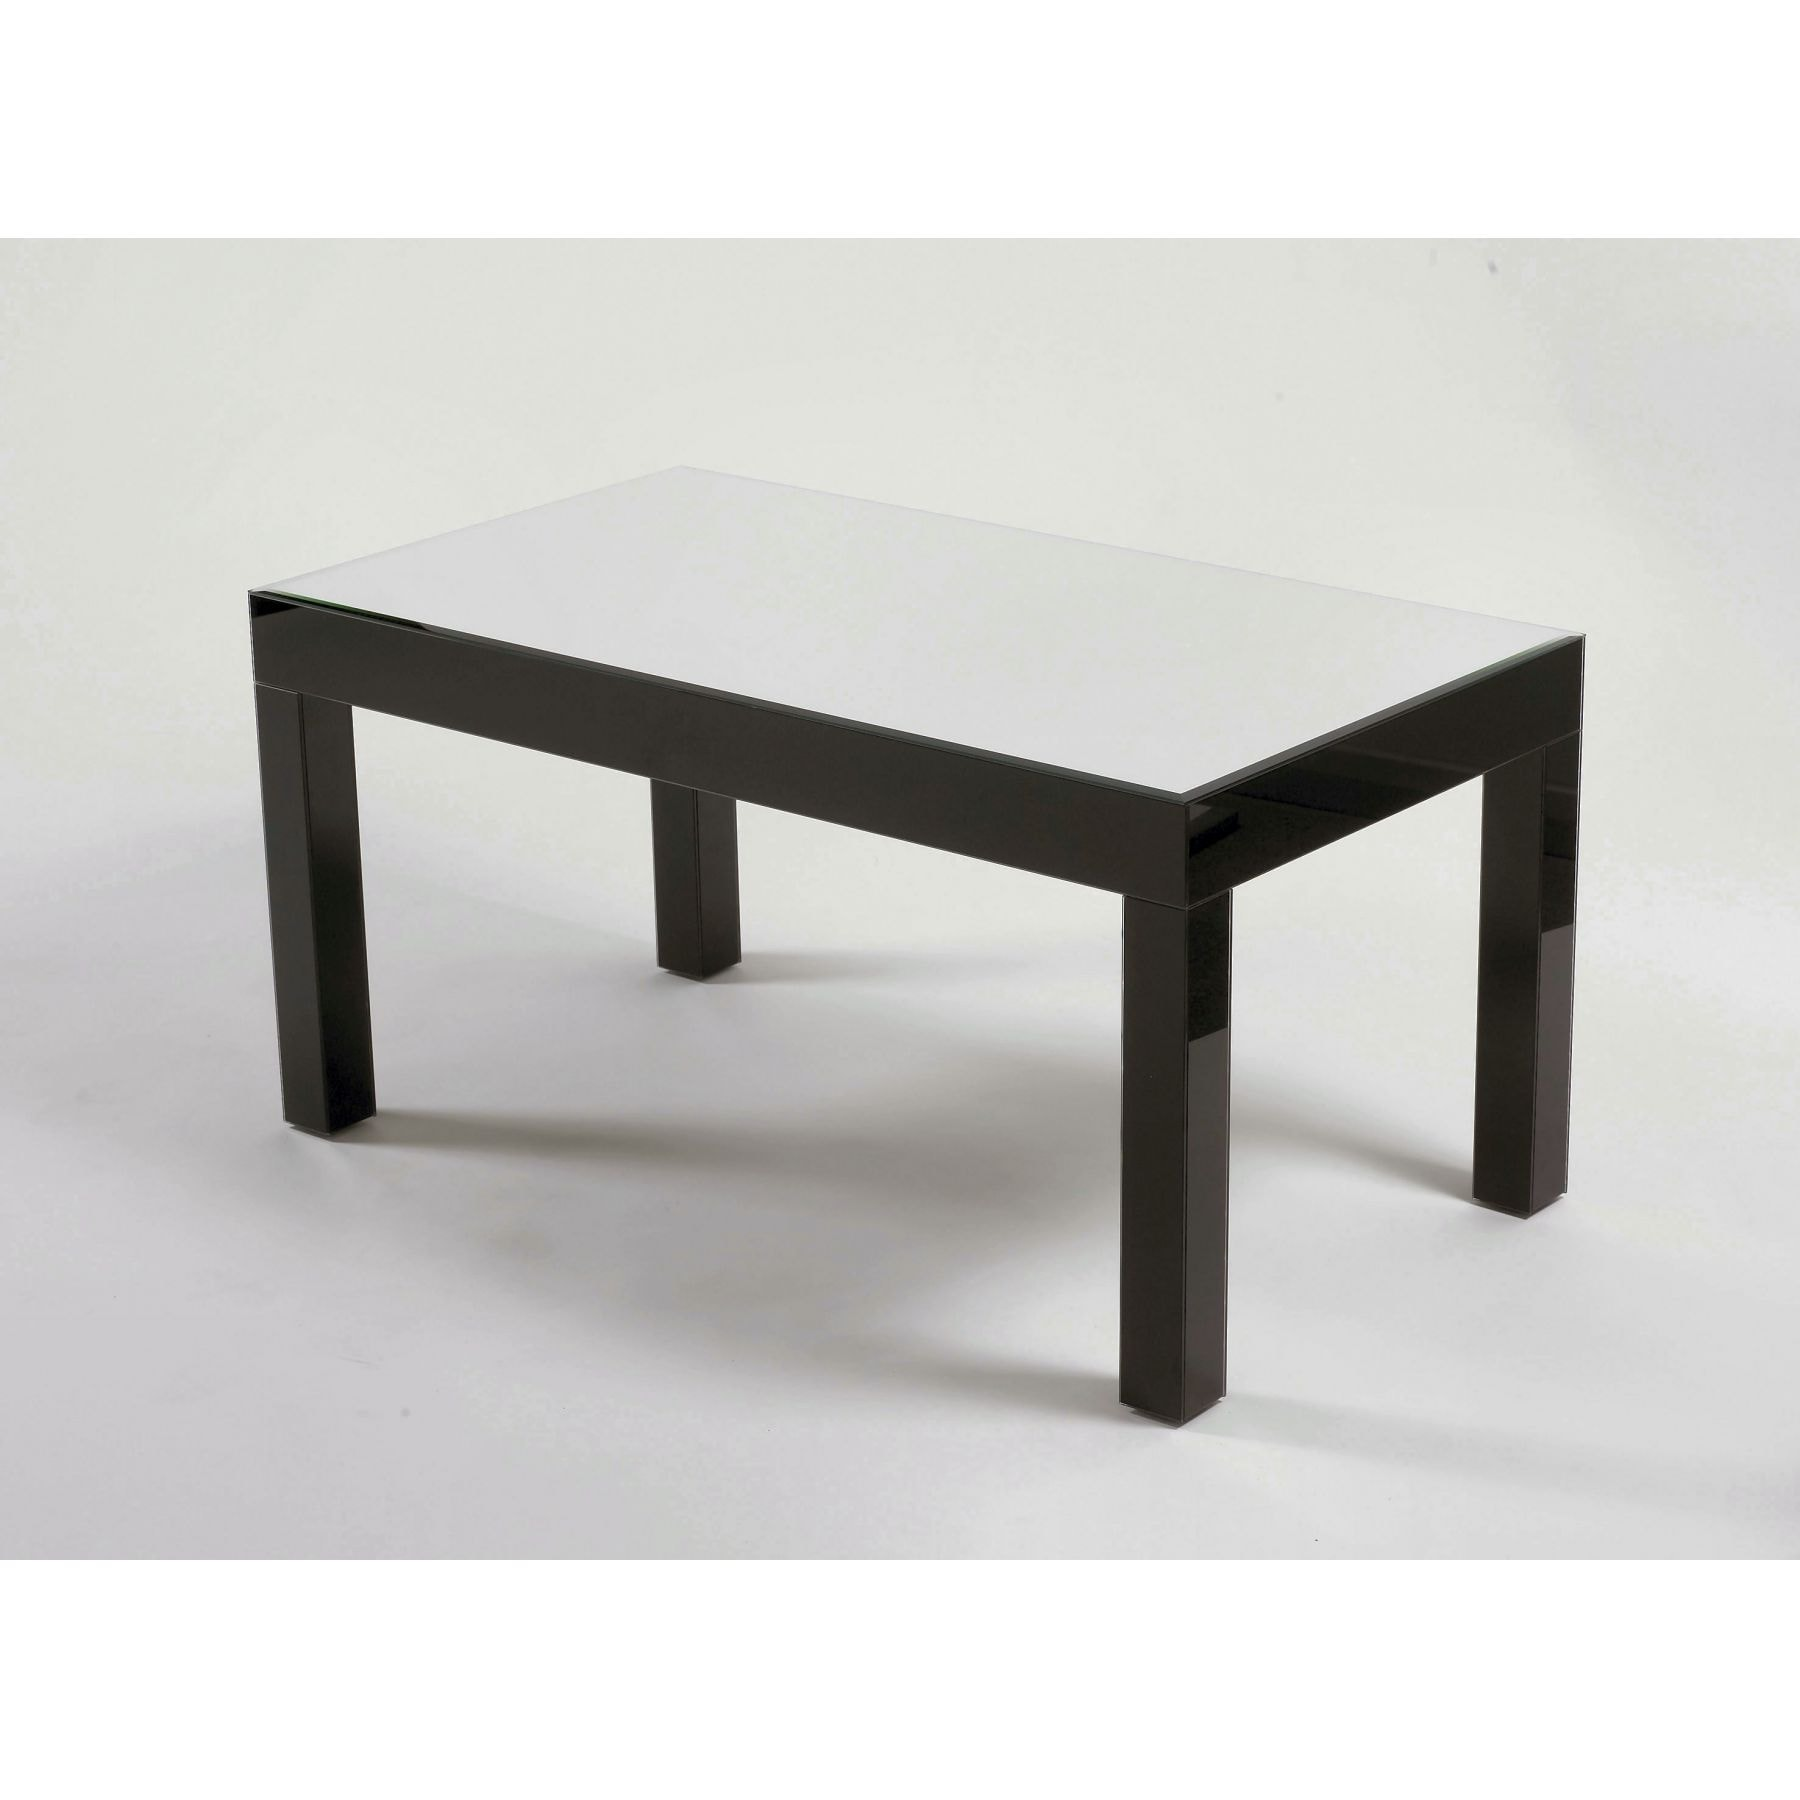 Silver Black Glass Coffee Table Glass Furniture From Homesdirect 365 Uk